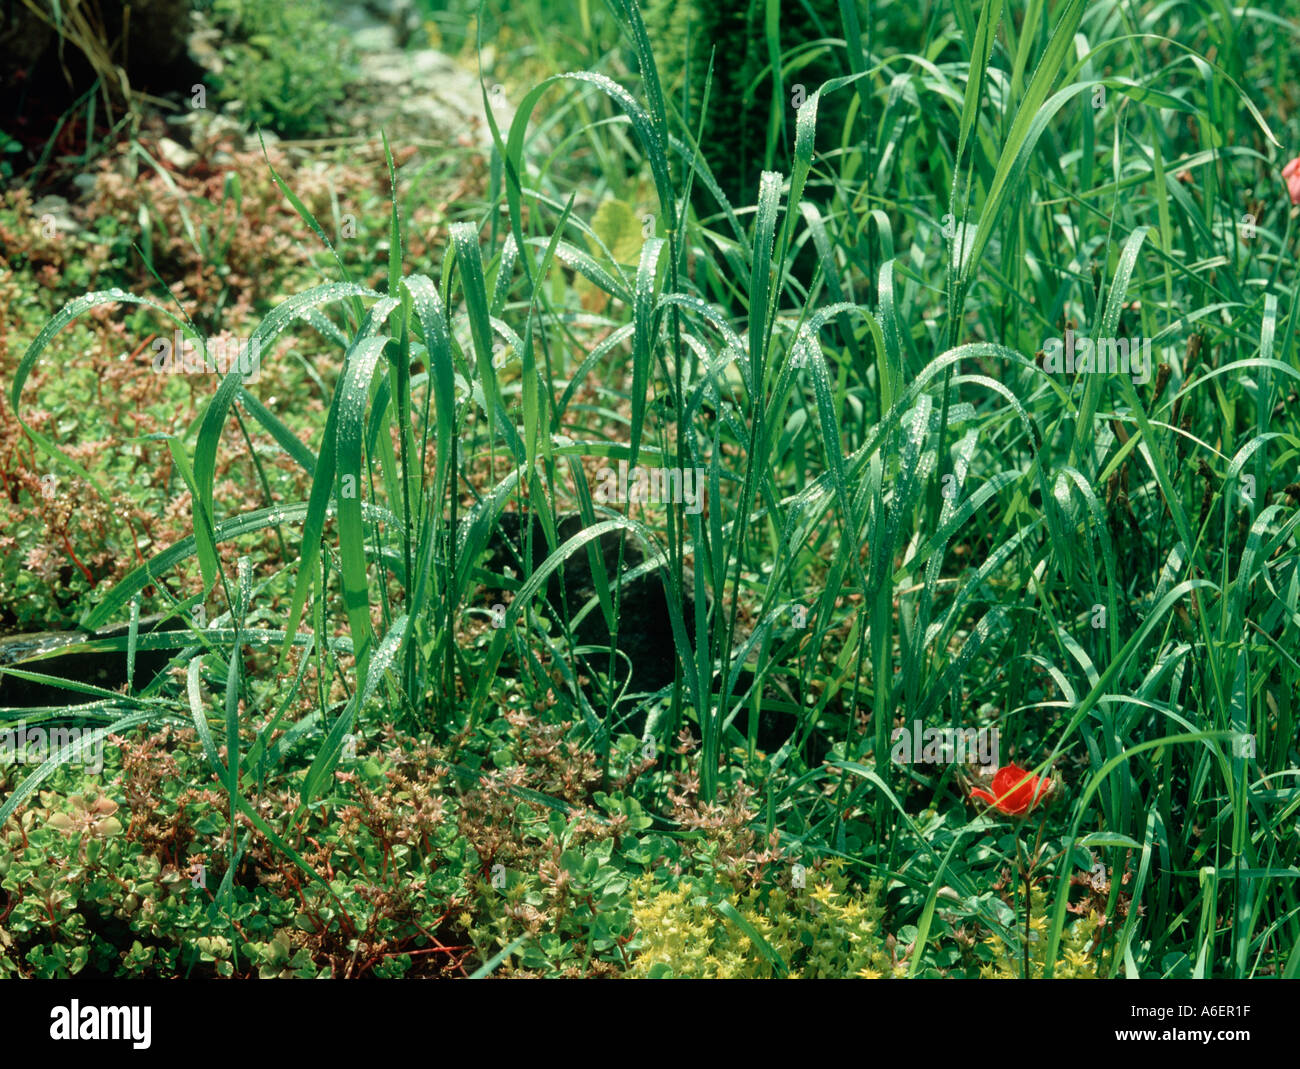 Grass Couch Couch Agropyron Repens As A Grass Weed In Garden Rockery Stock